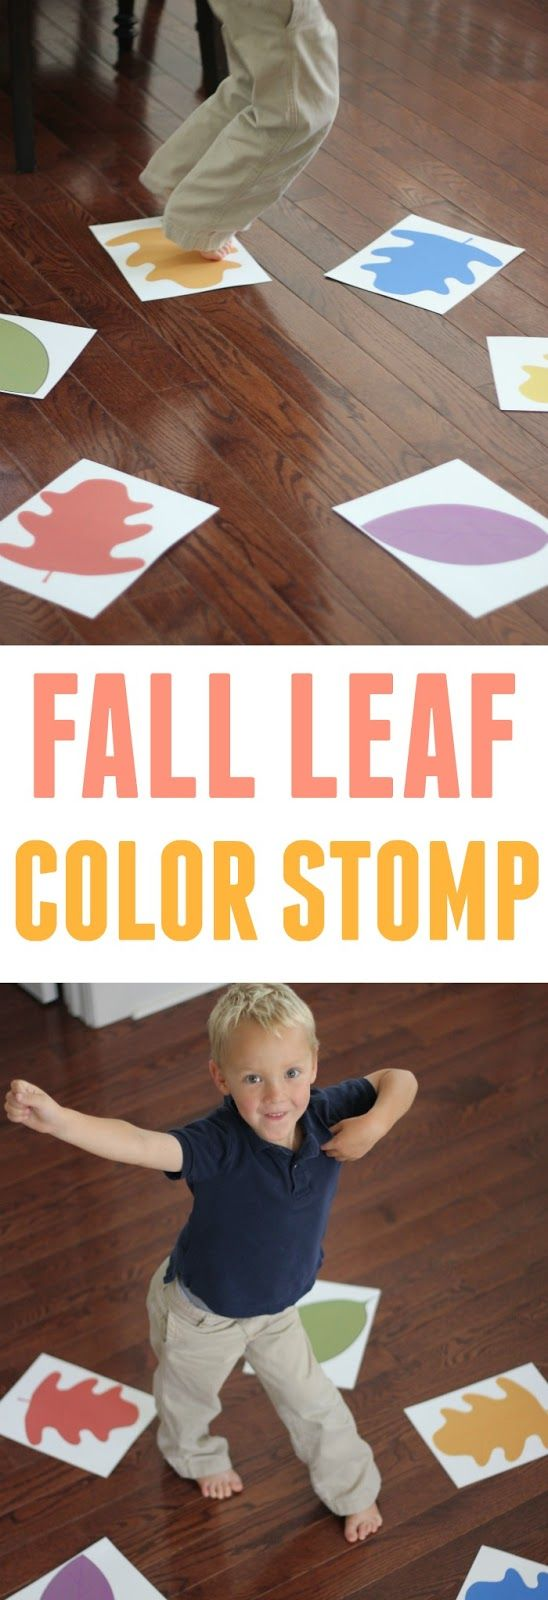 Fall Leaf Color Stomp: A simple and fun way to move and explore colors!